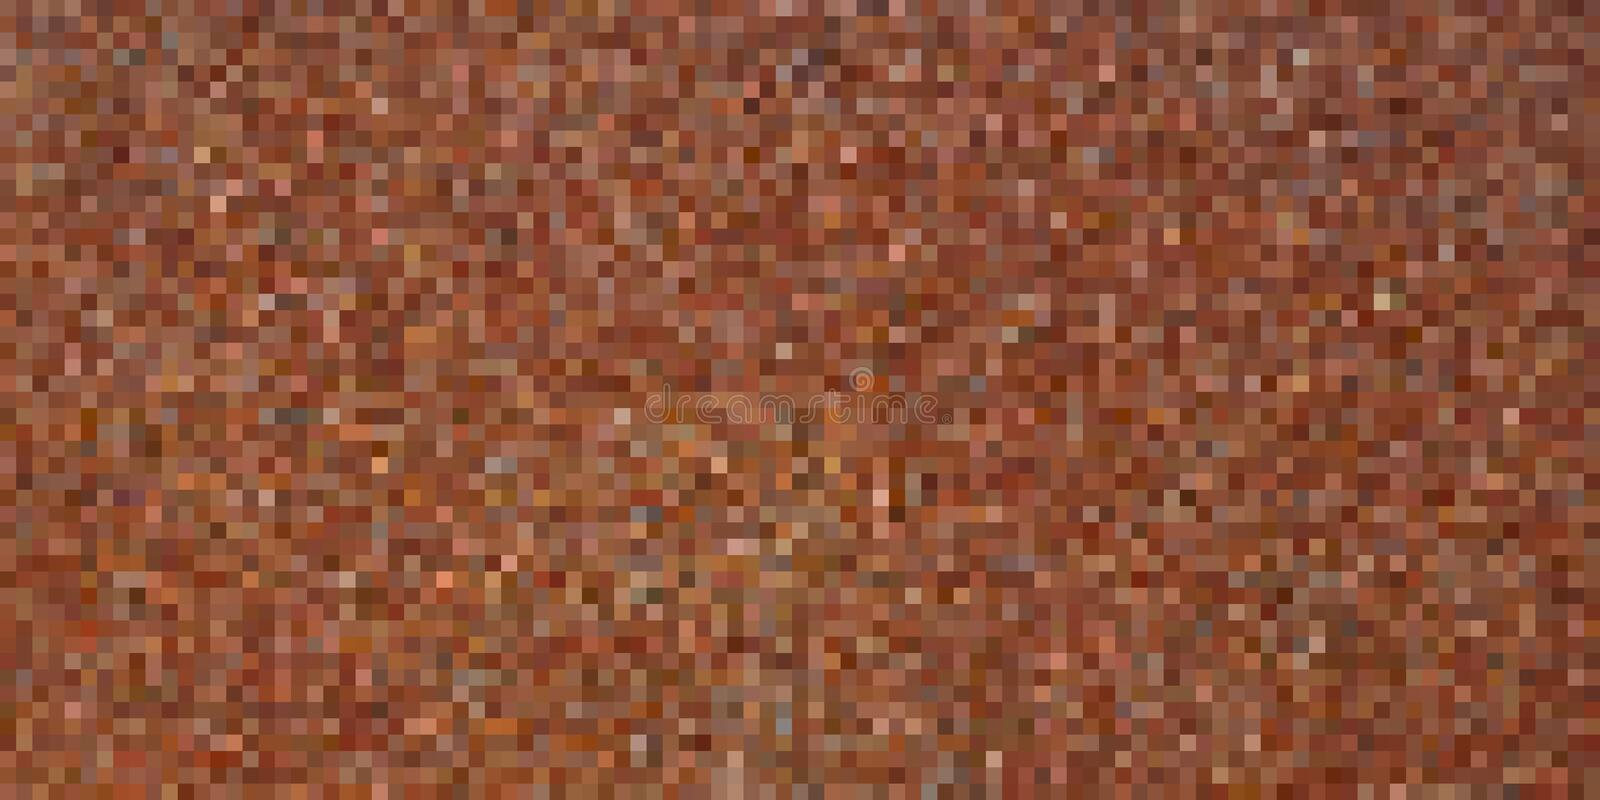 Pixel art background. Vector illustration. Abstract square pixel pattern. Mosaic background stock photo